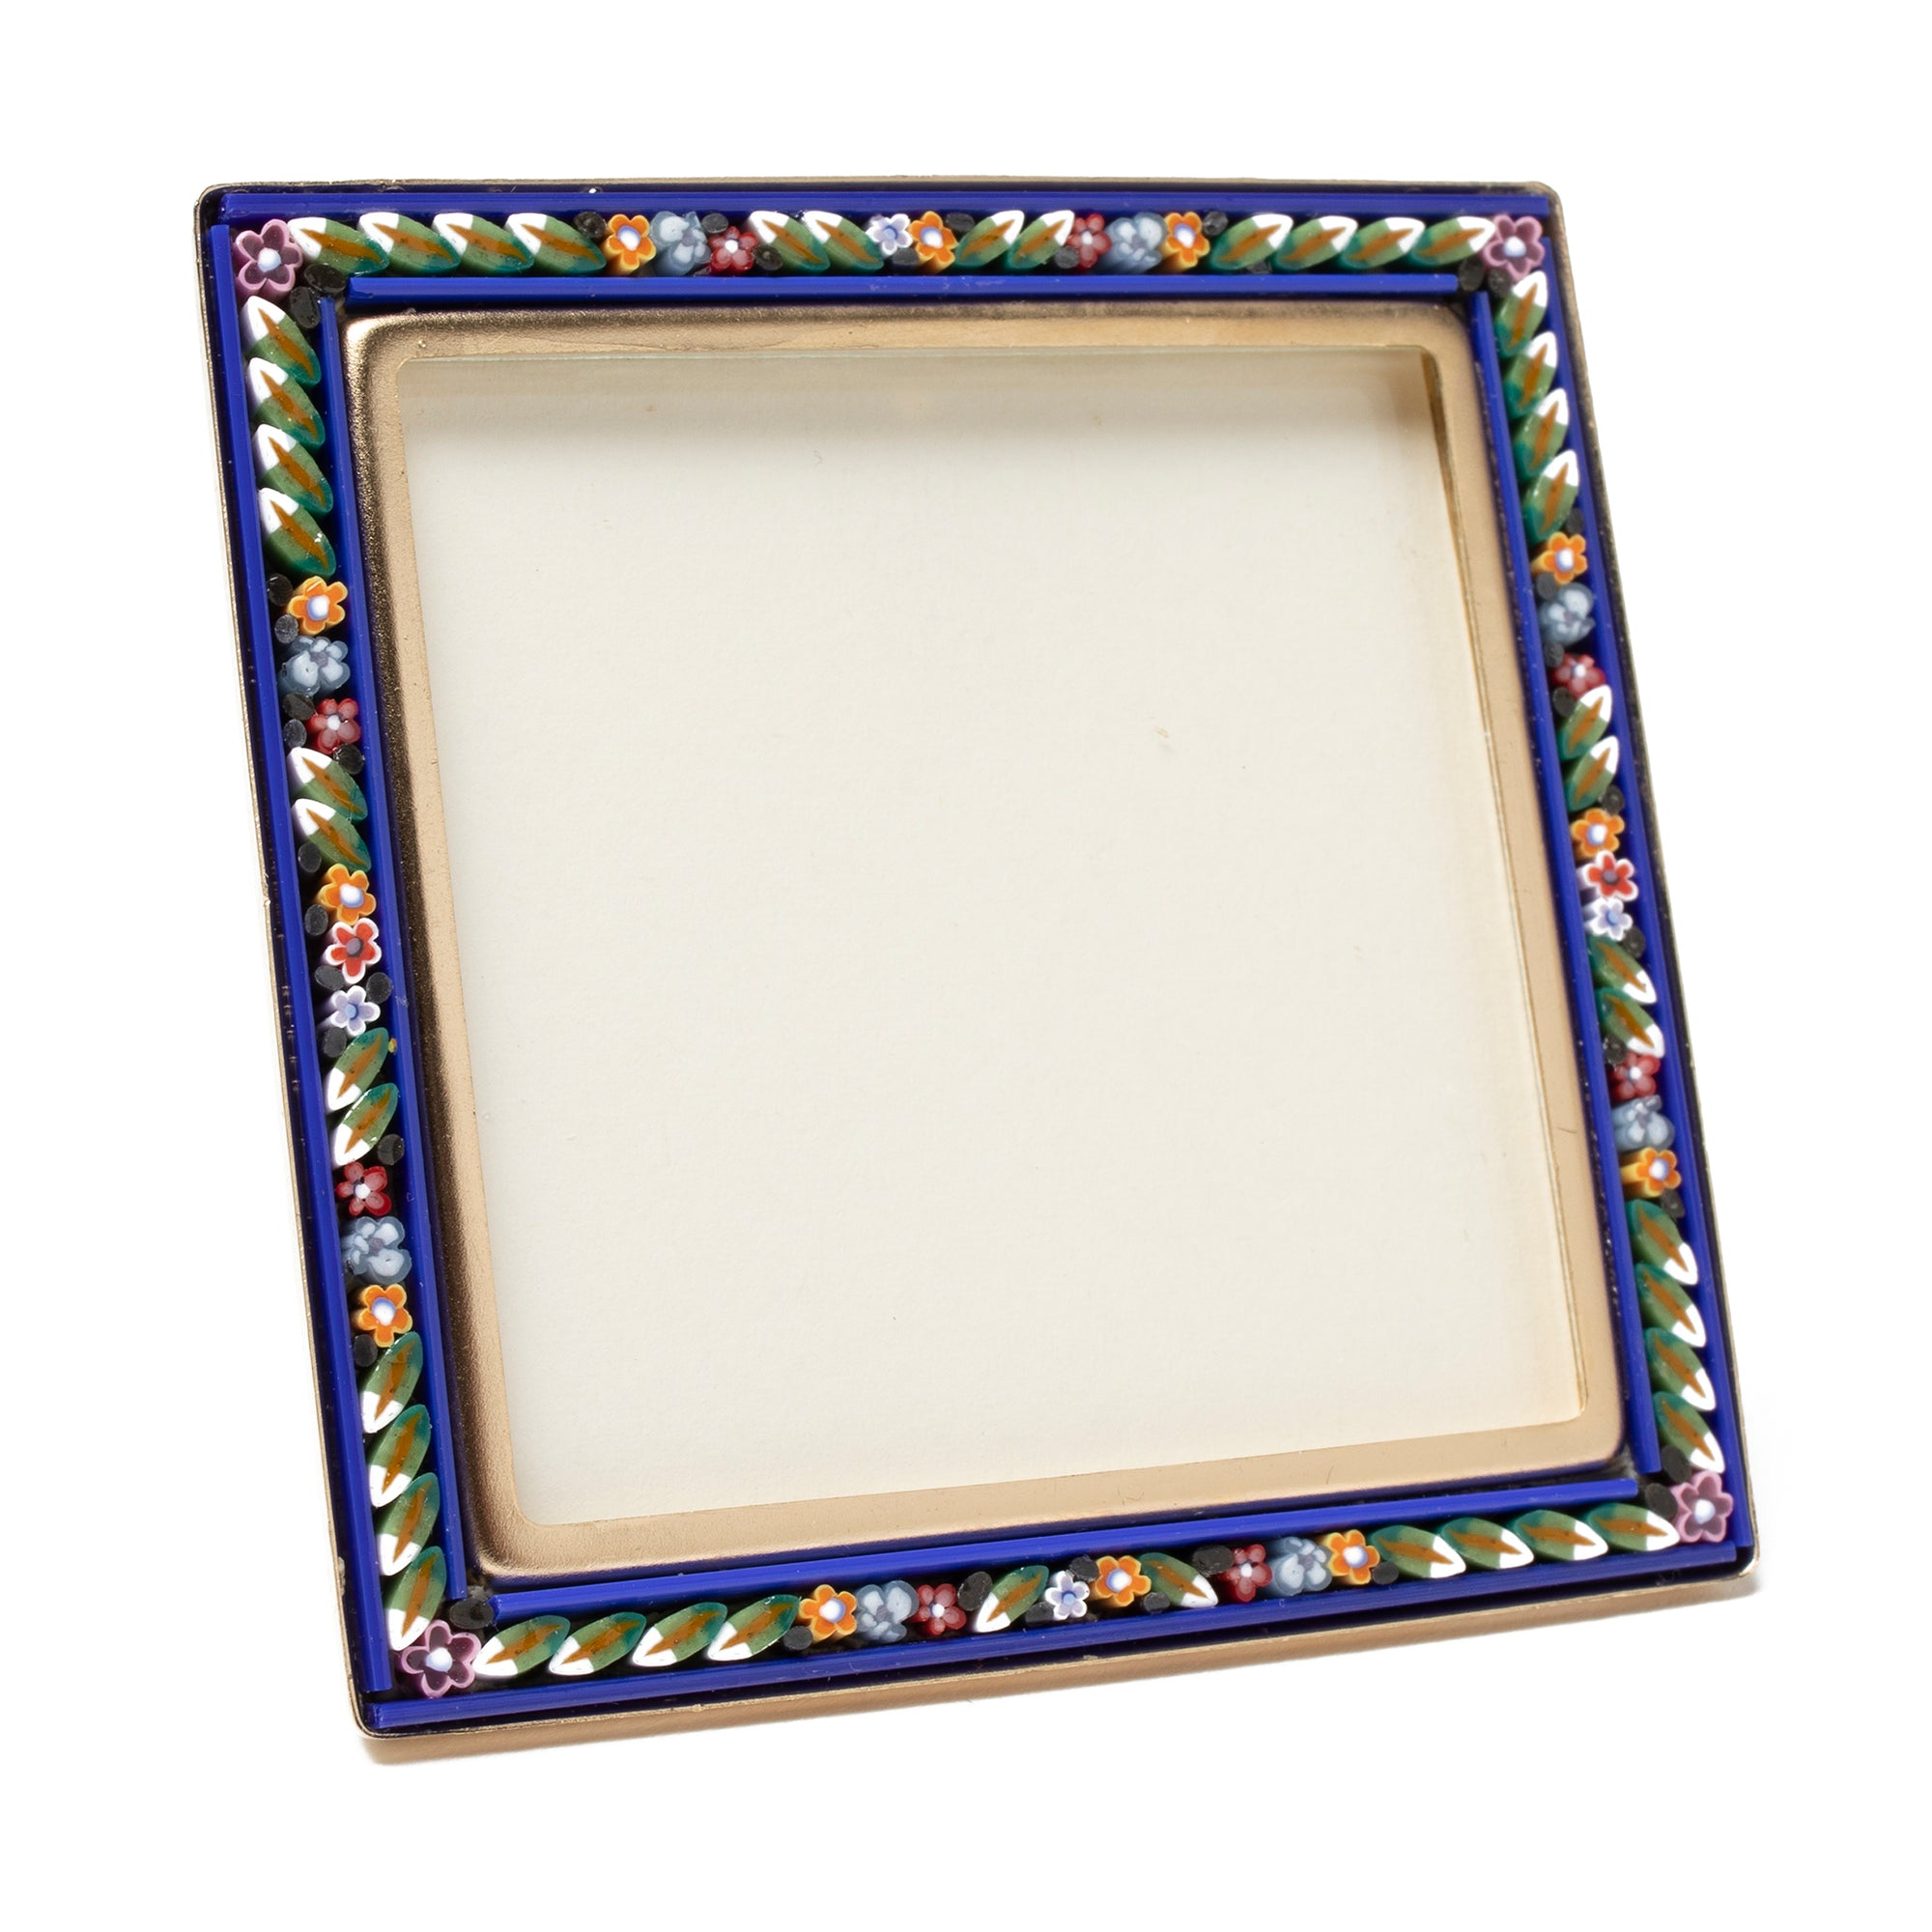 Murano Glass Mosaic Frame - Square